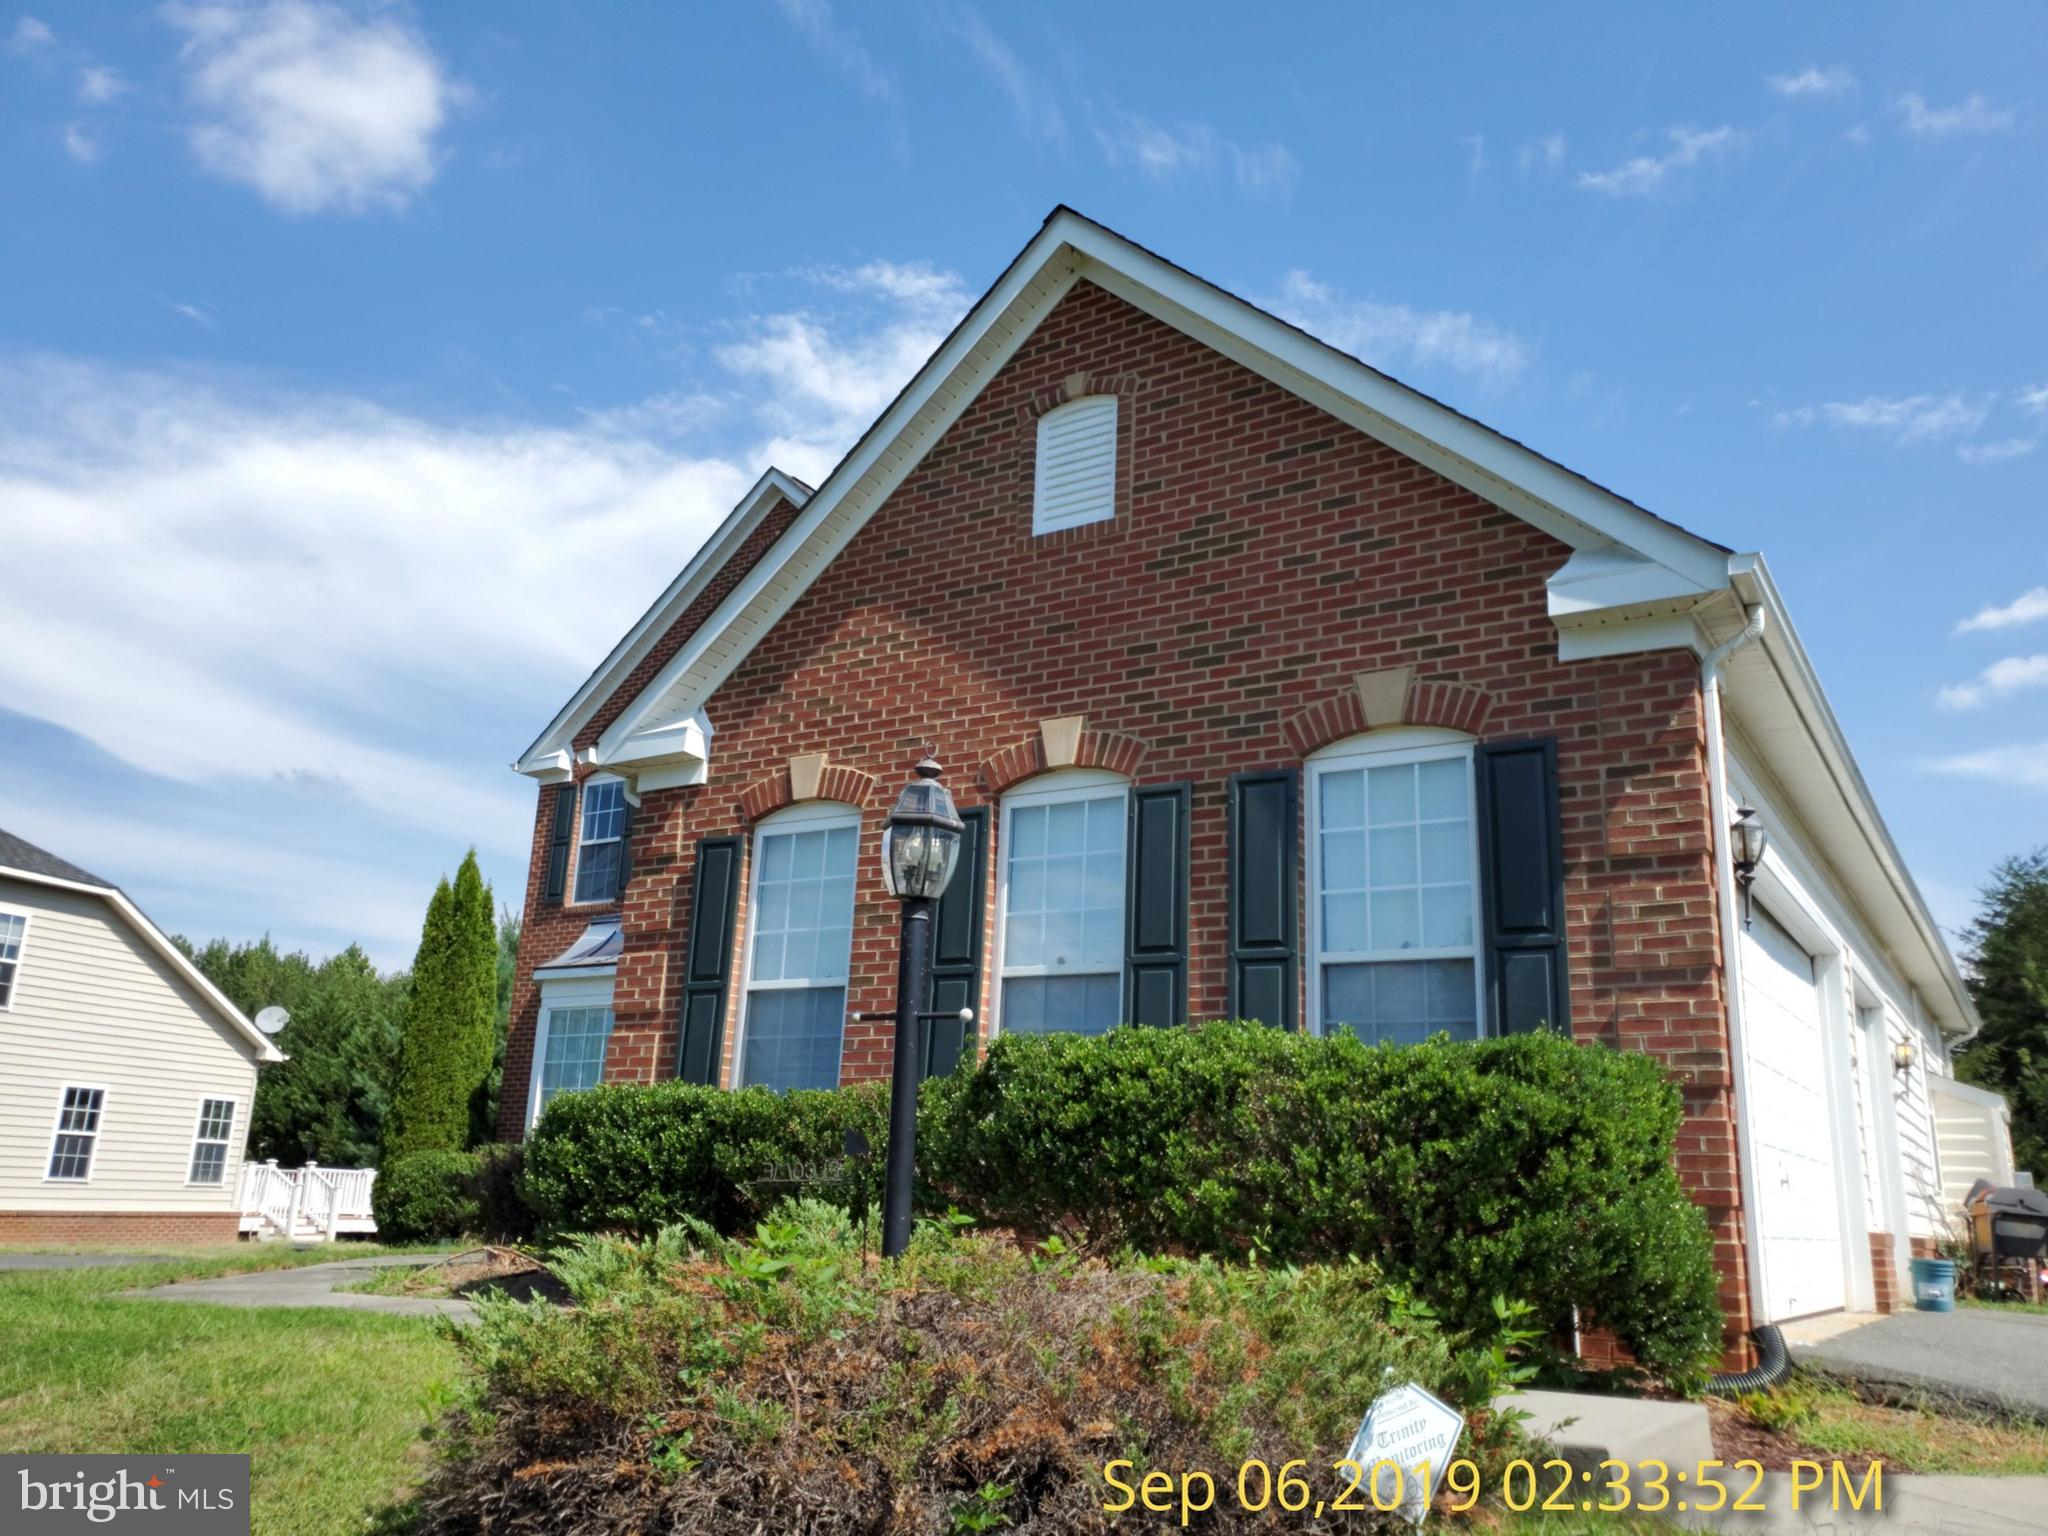 24 EAGLE CREEK TERRACE, GORDONSVILLE, VA 22942